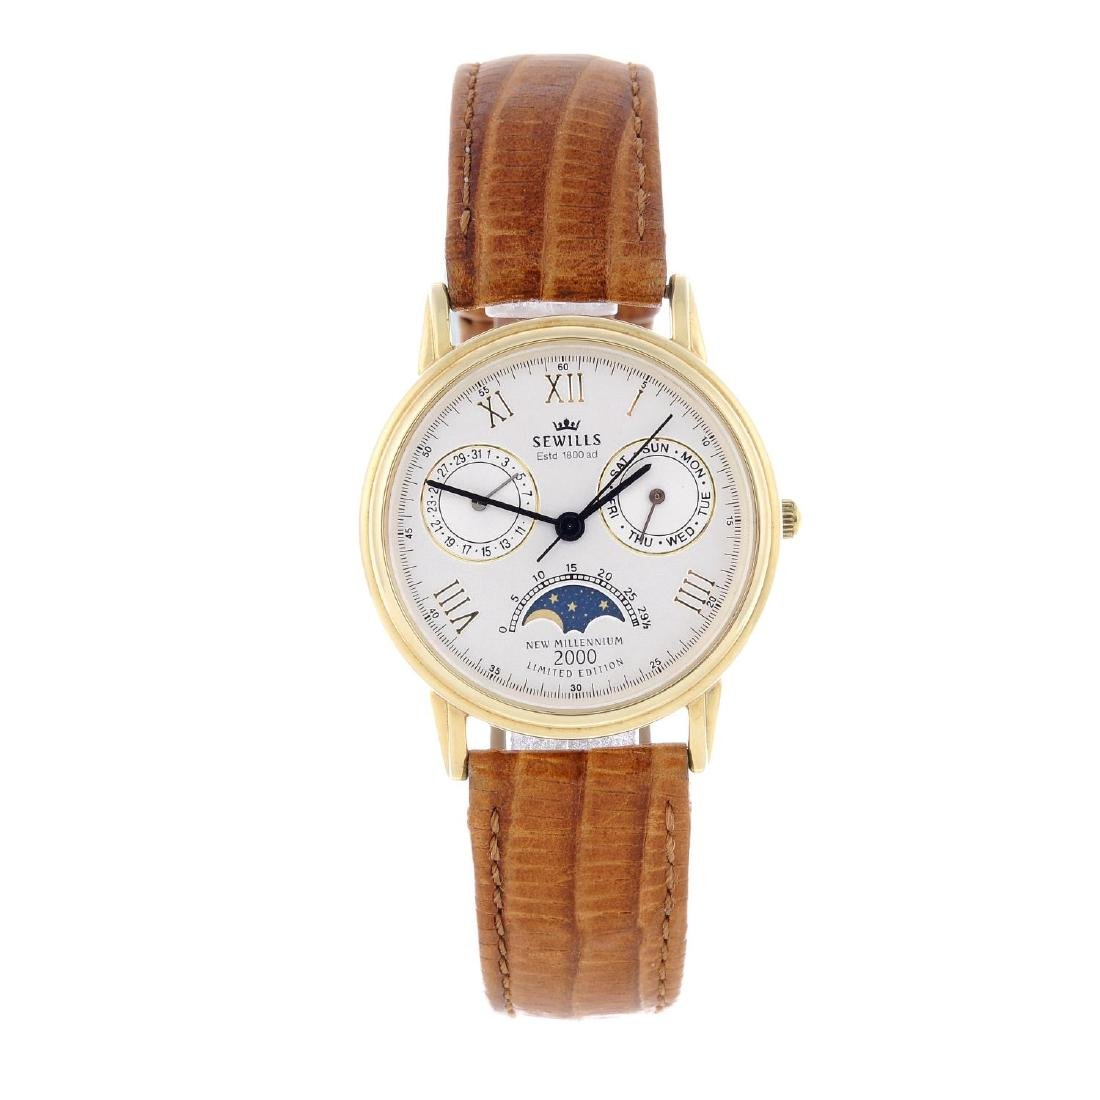 SEWILLS - a gentleman's wrist watch. 14ct yellow gold